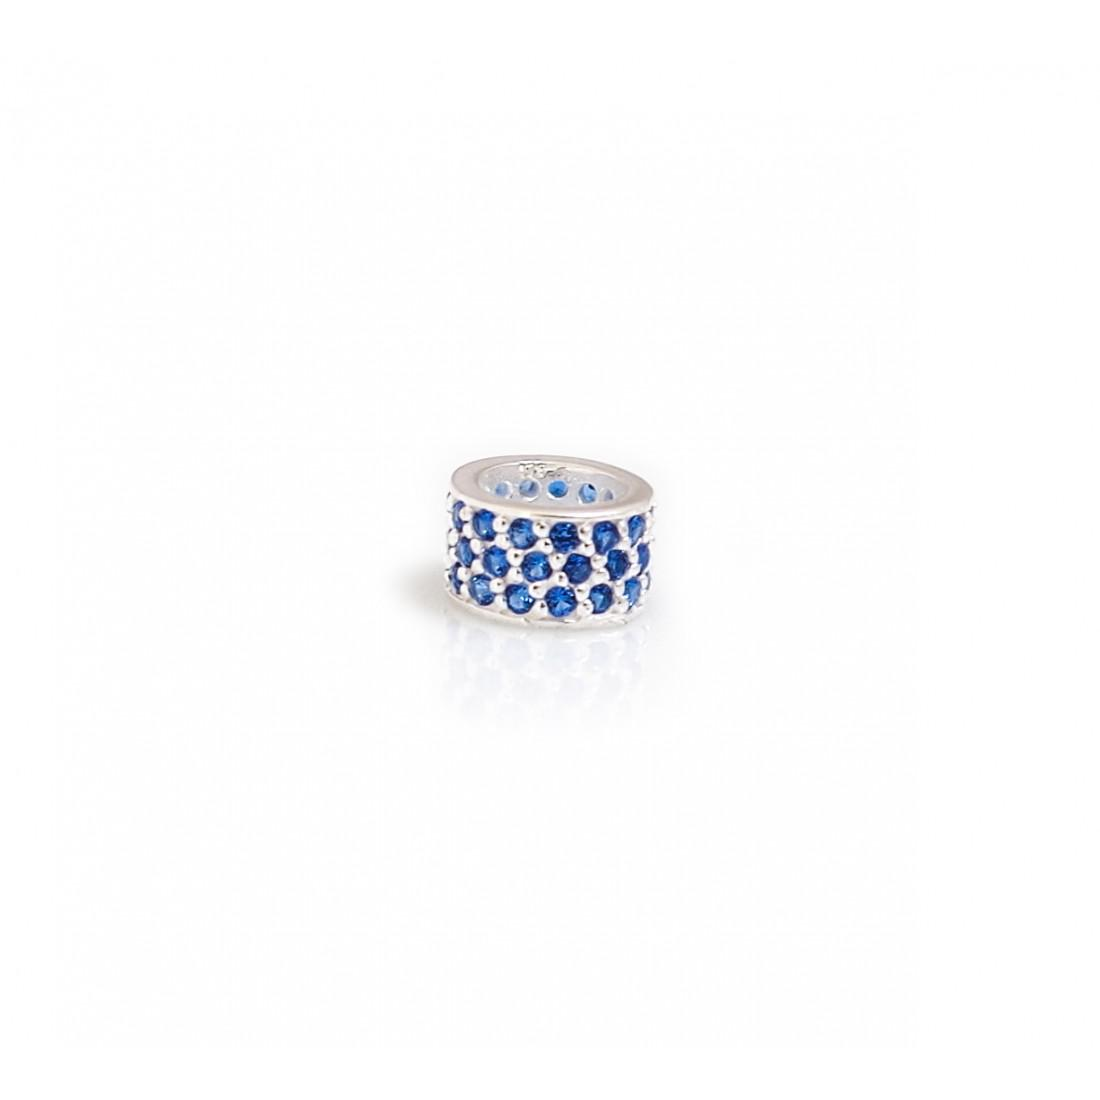 Exclusive Sterling Silver & Sapphire Blue Starlight Roller Charm Bead